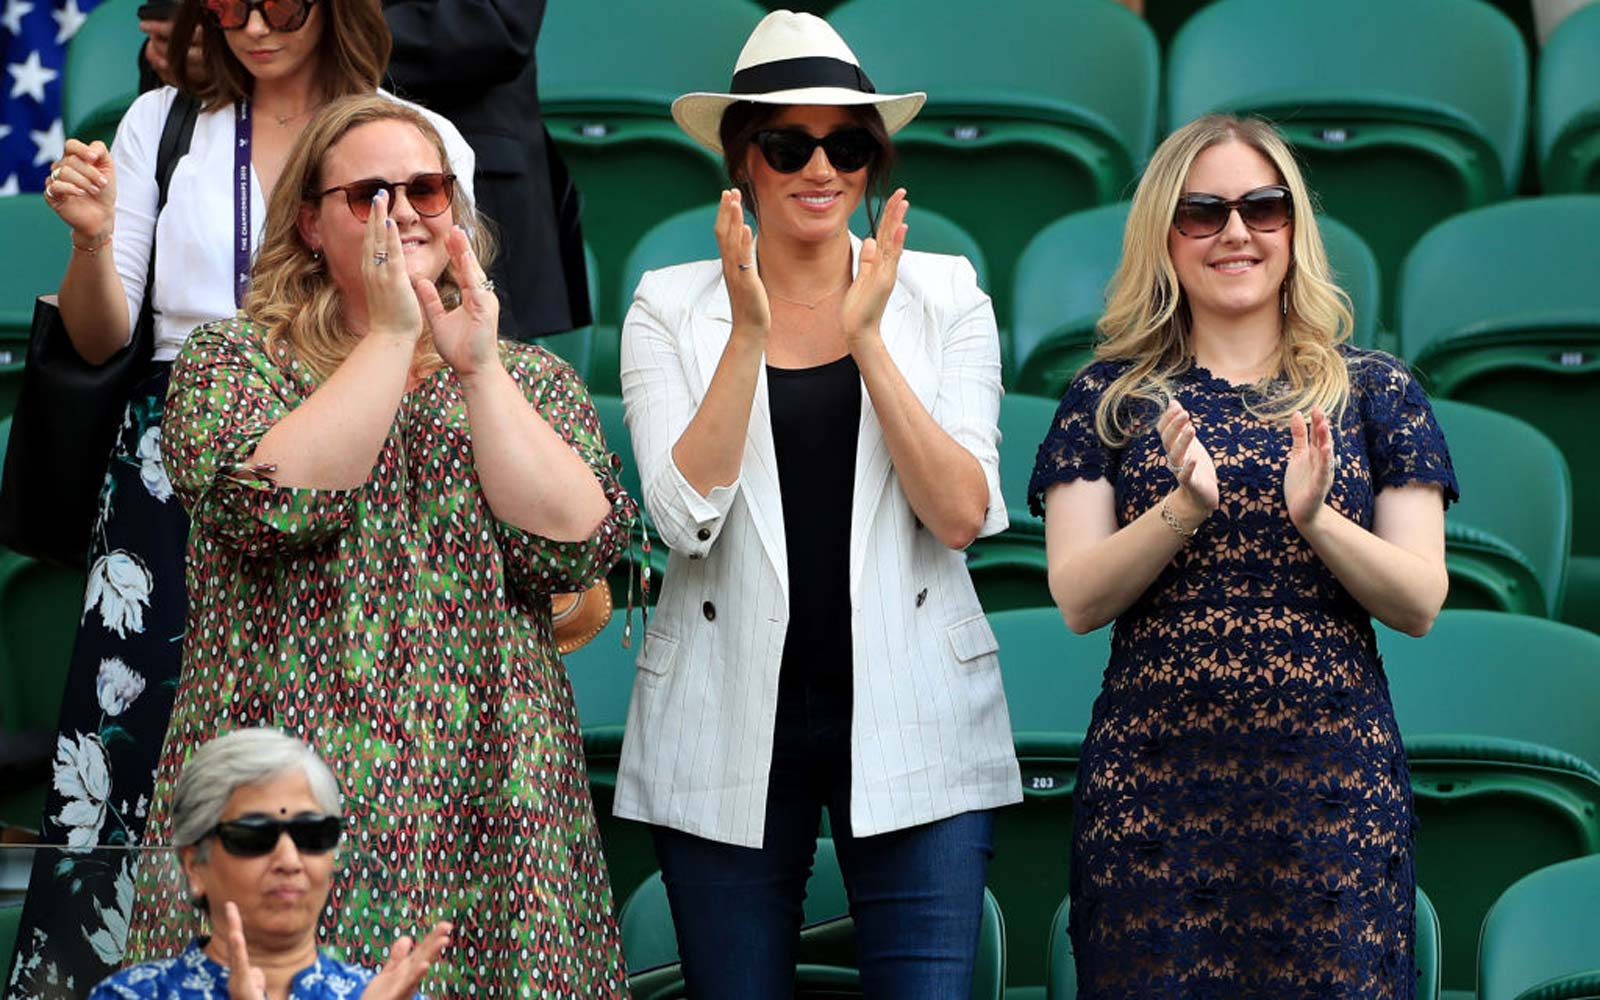 Meghan Markle Made a Major Fashion Faux Pas at Wimbledon